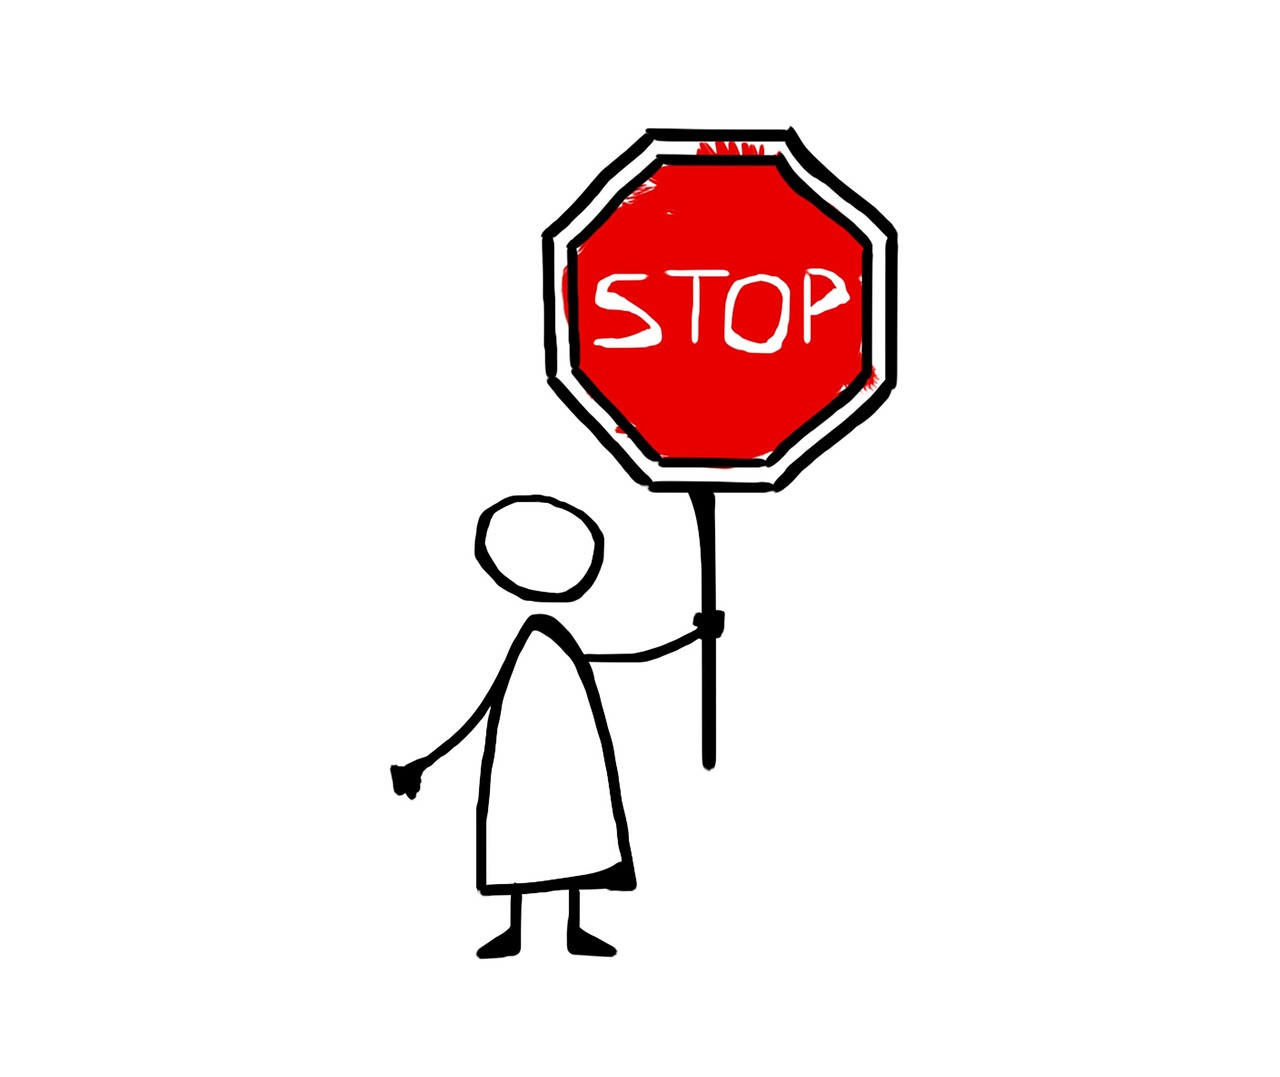 Stop Drawing Icon Free Image On Pixabay